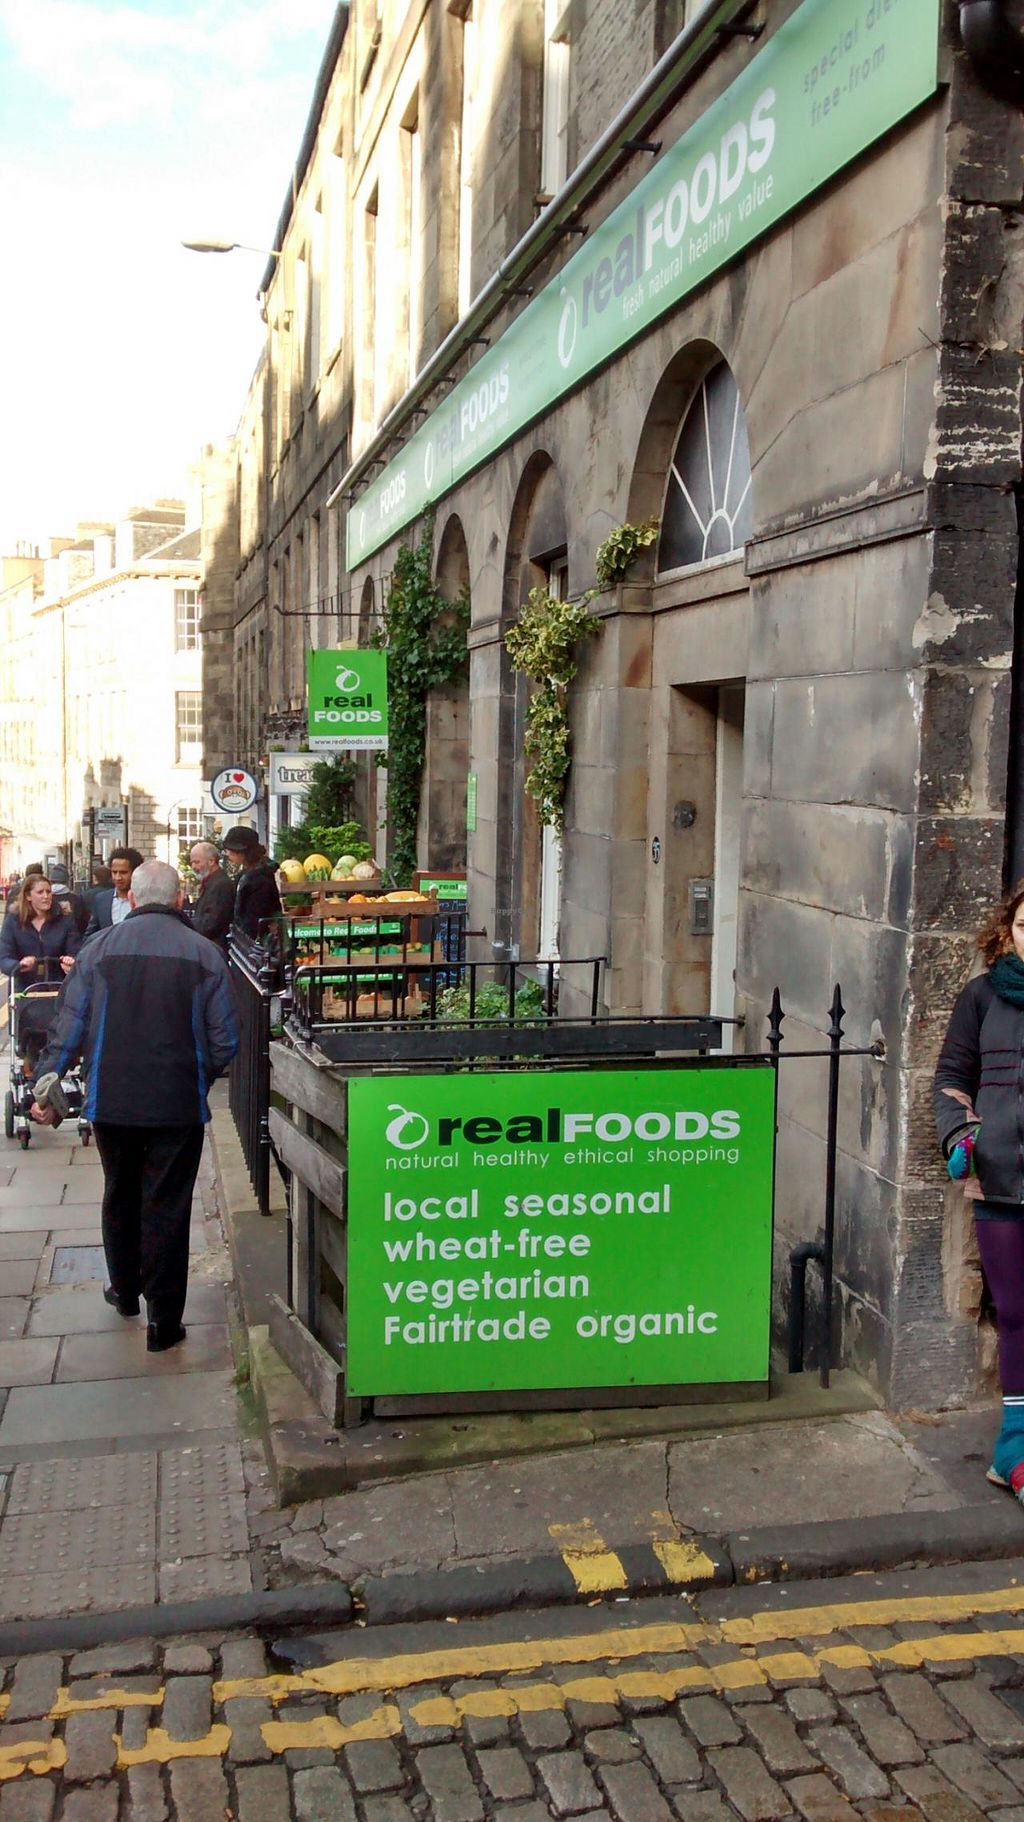 """Photo of Real Foods  by <a href=""""/members/profile/craigmc"""">craigmc</a> <br/>Real foods exterior Broughton Street <br/> February 6, 2014  - <a href='/contact/abuse/image/1088/63789'>Report</a>"""